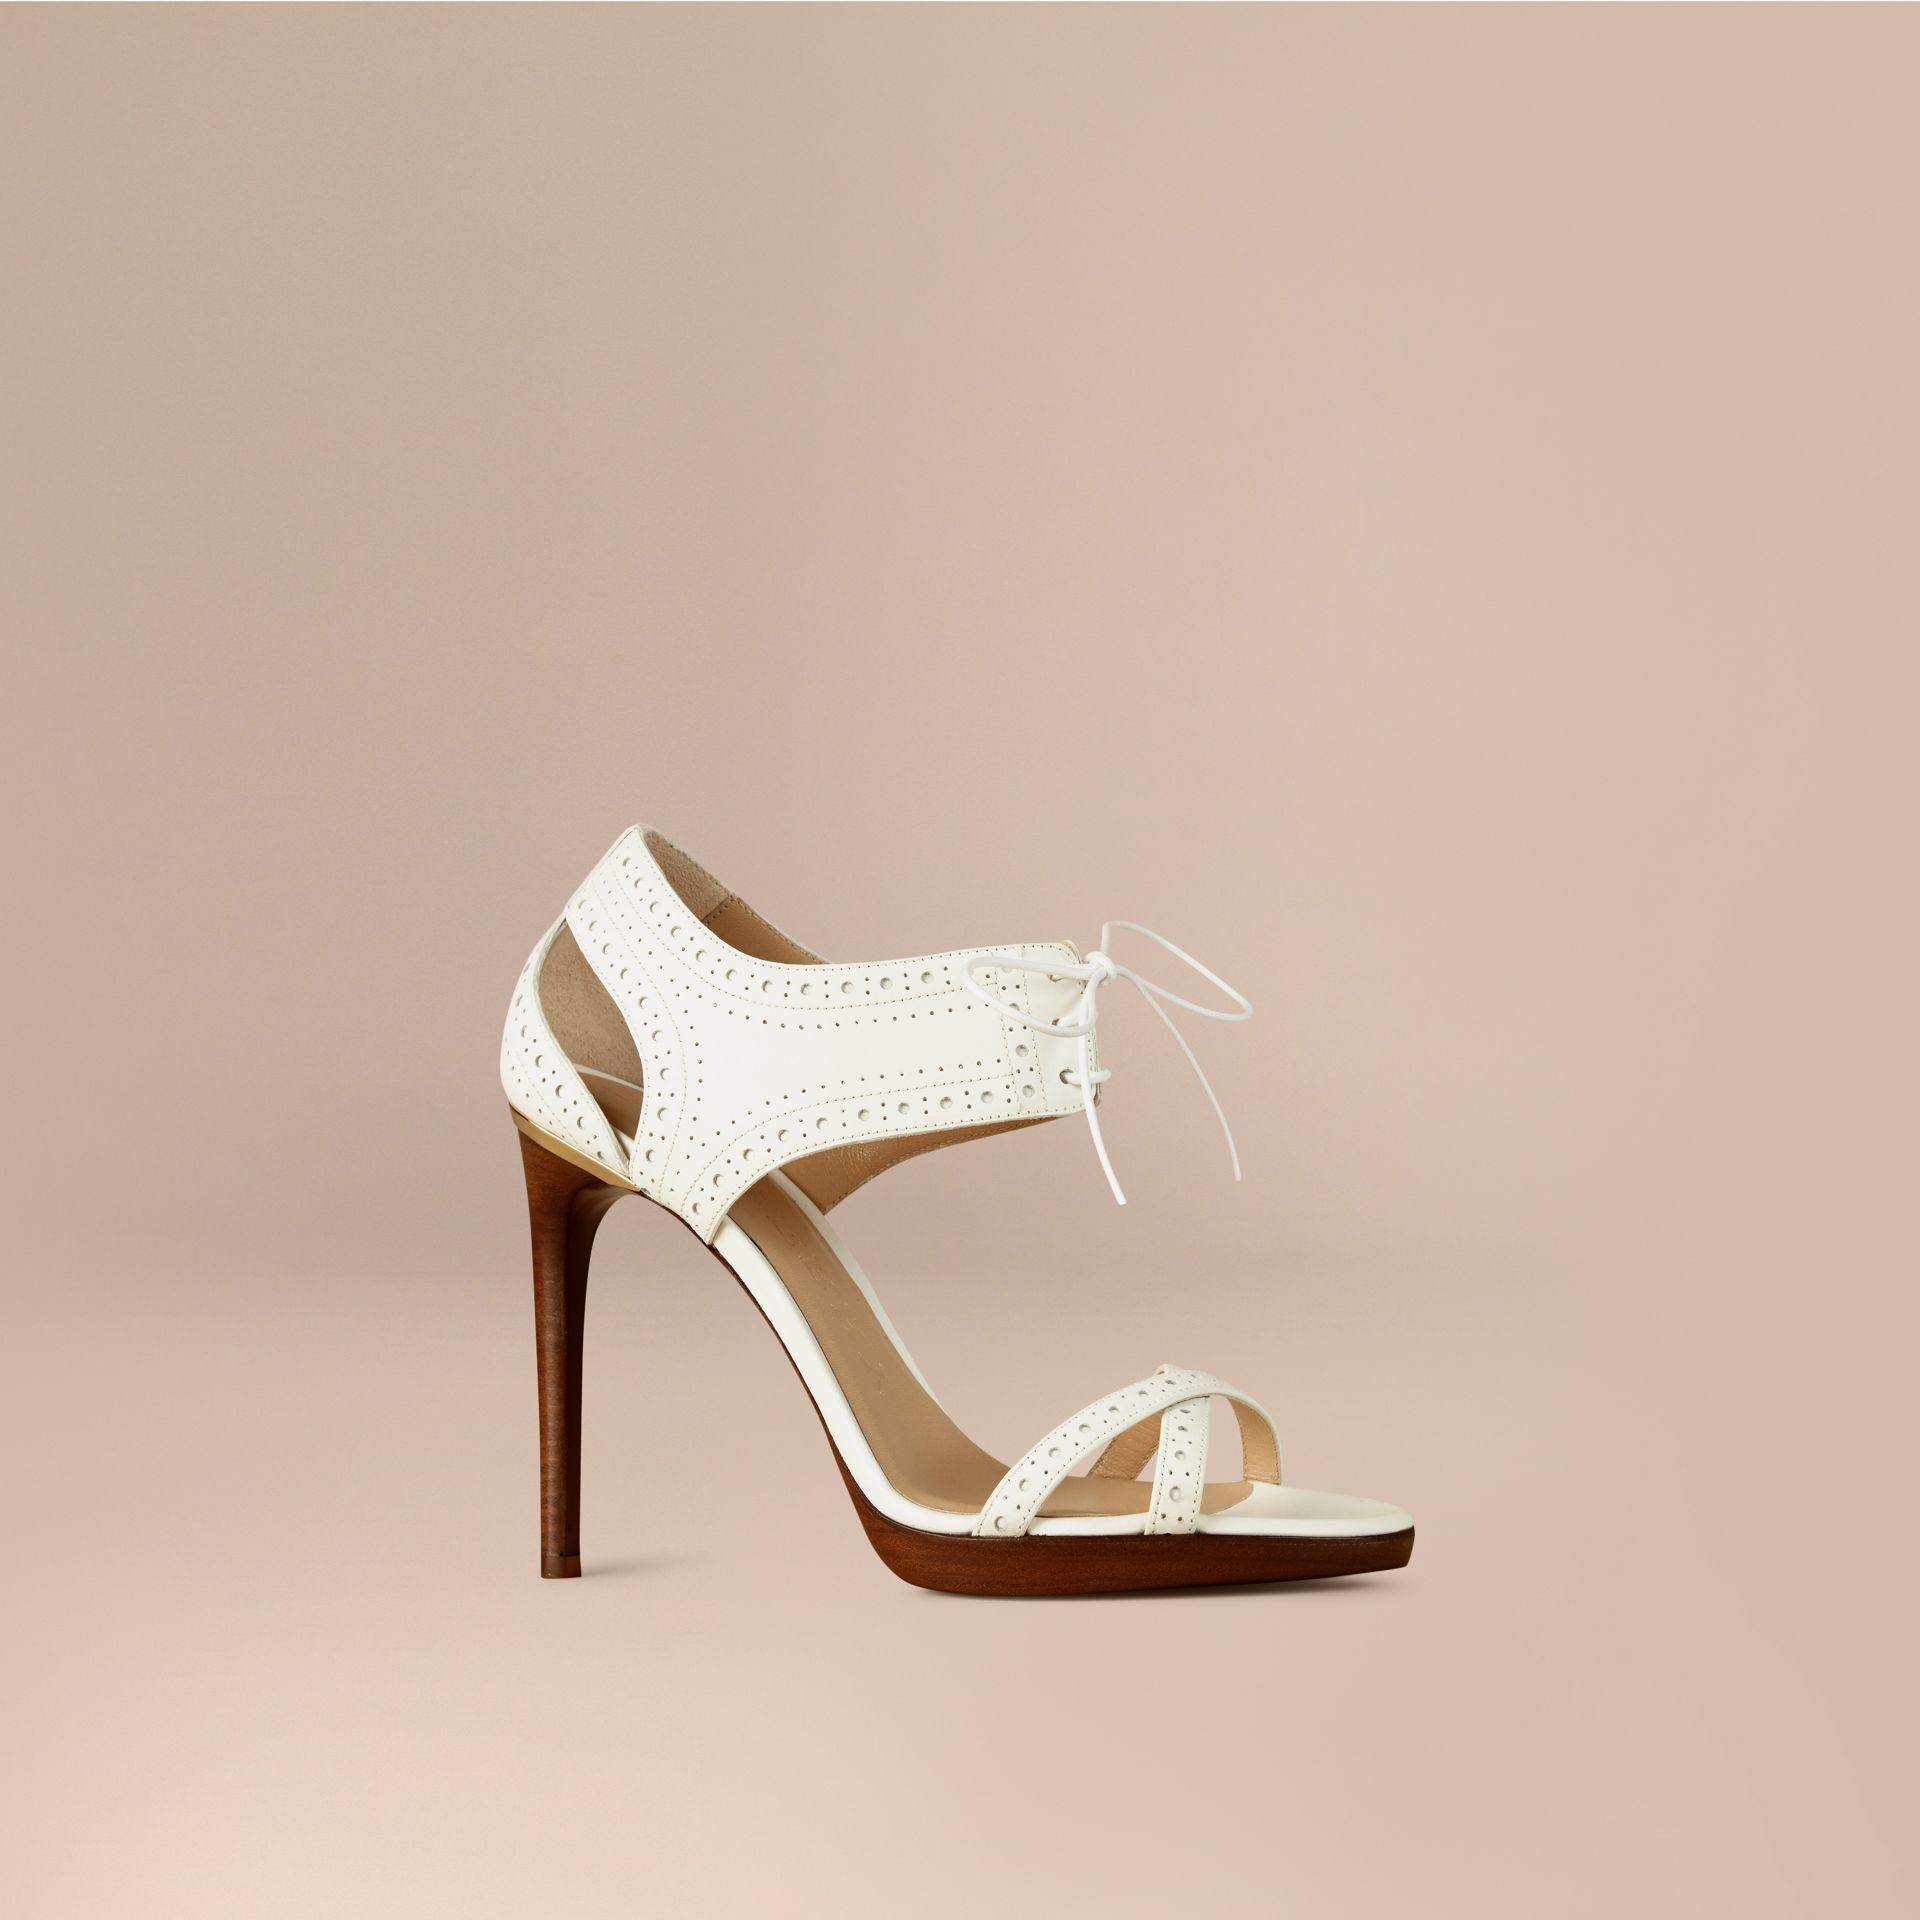 Optic white Perforated Detail Lace-up Leather Sandals - gallery image 1